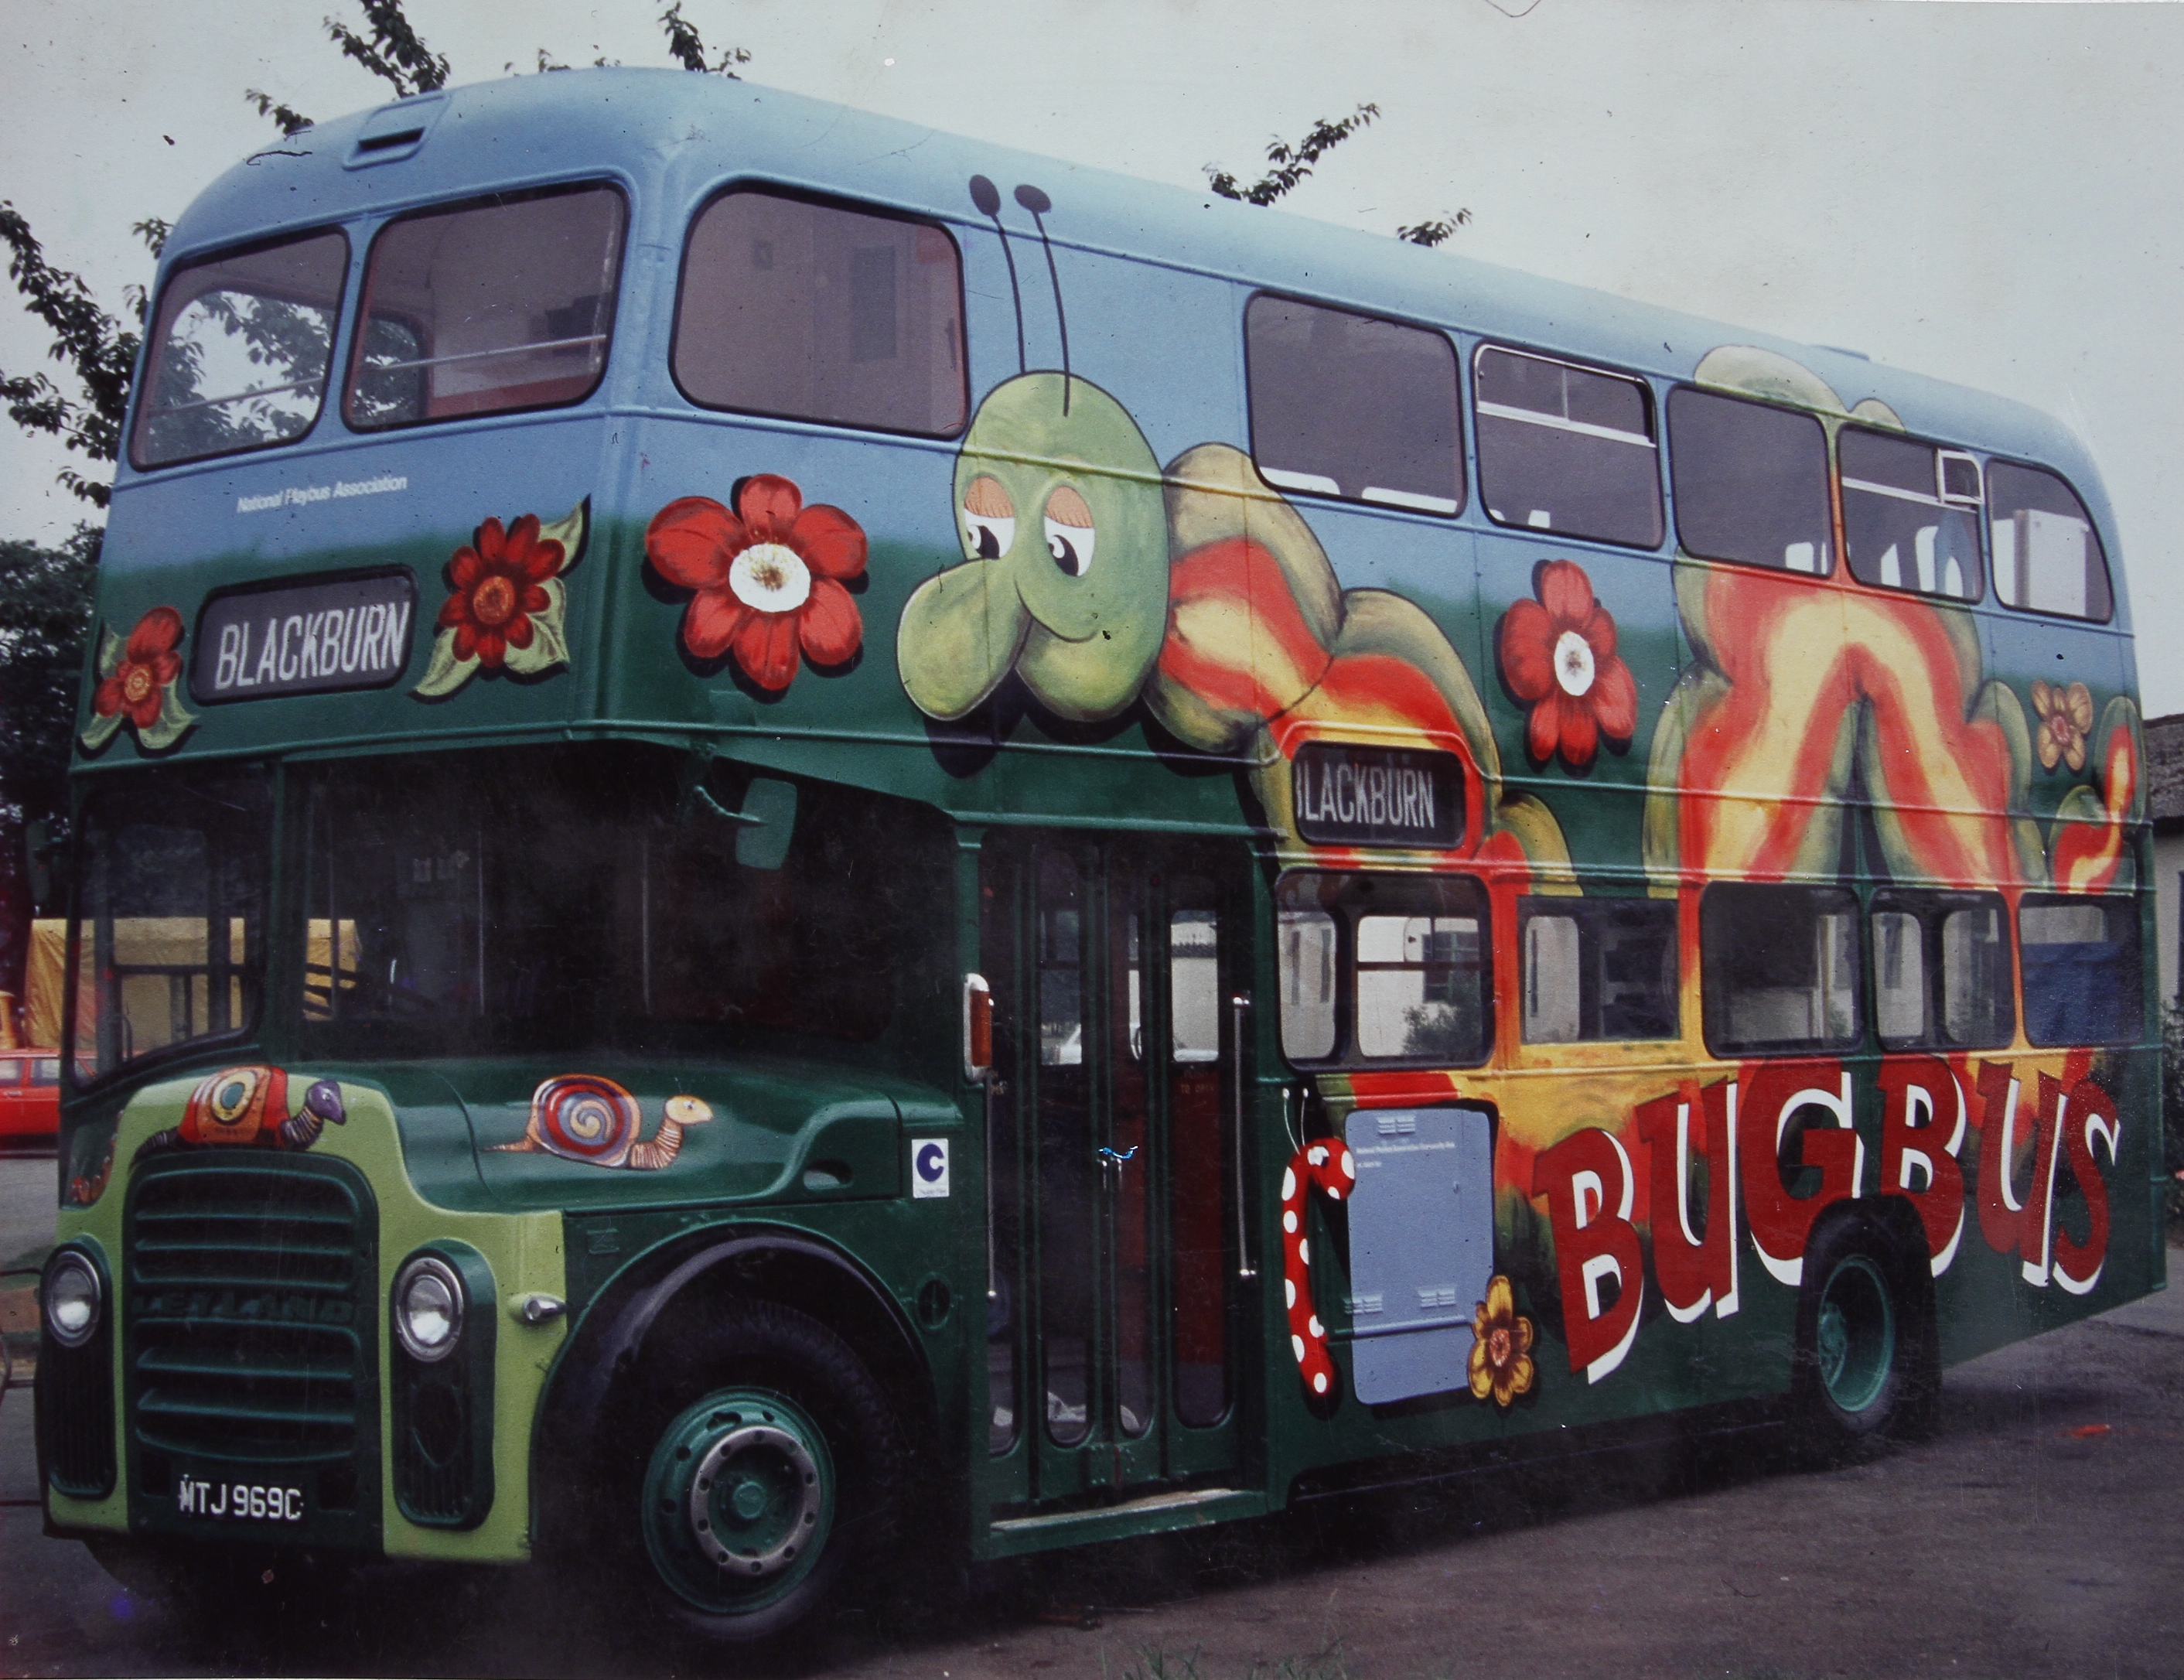 Blackburn bug Bus